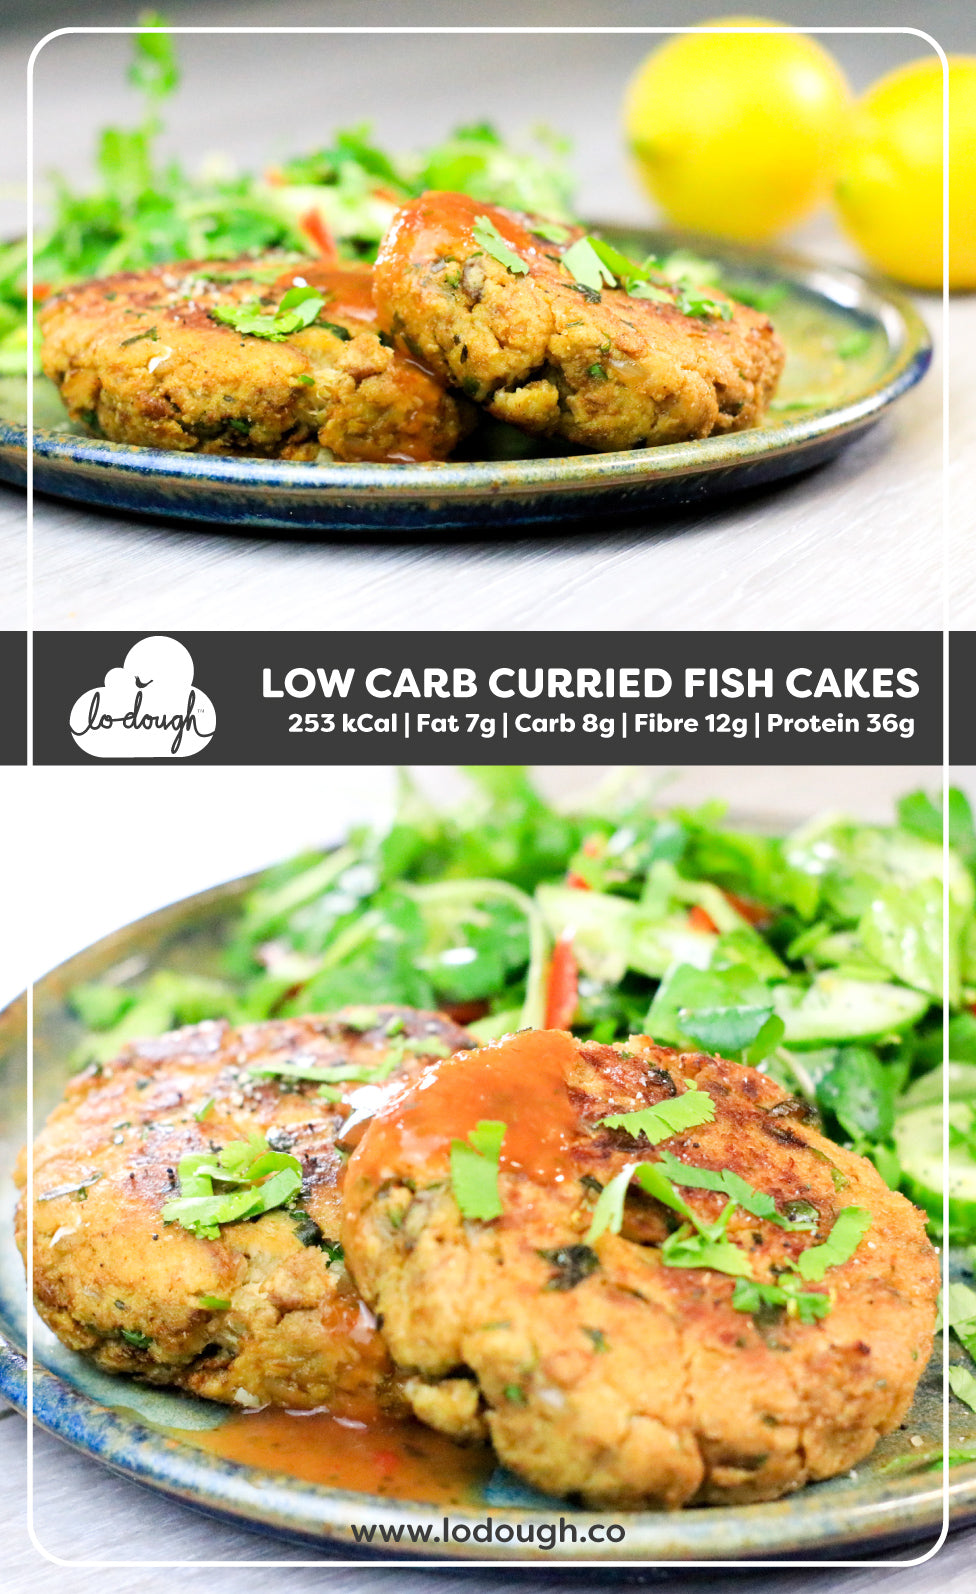 Low Carb Curried Fish Cakes